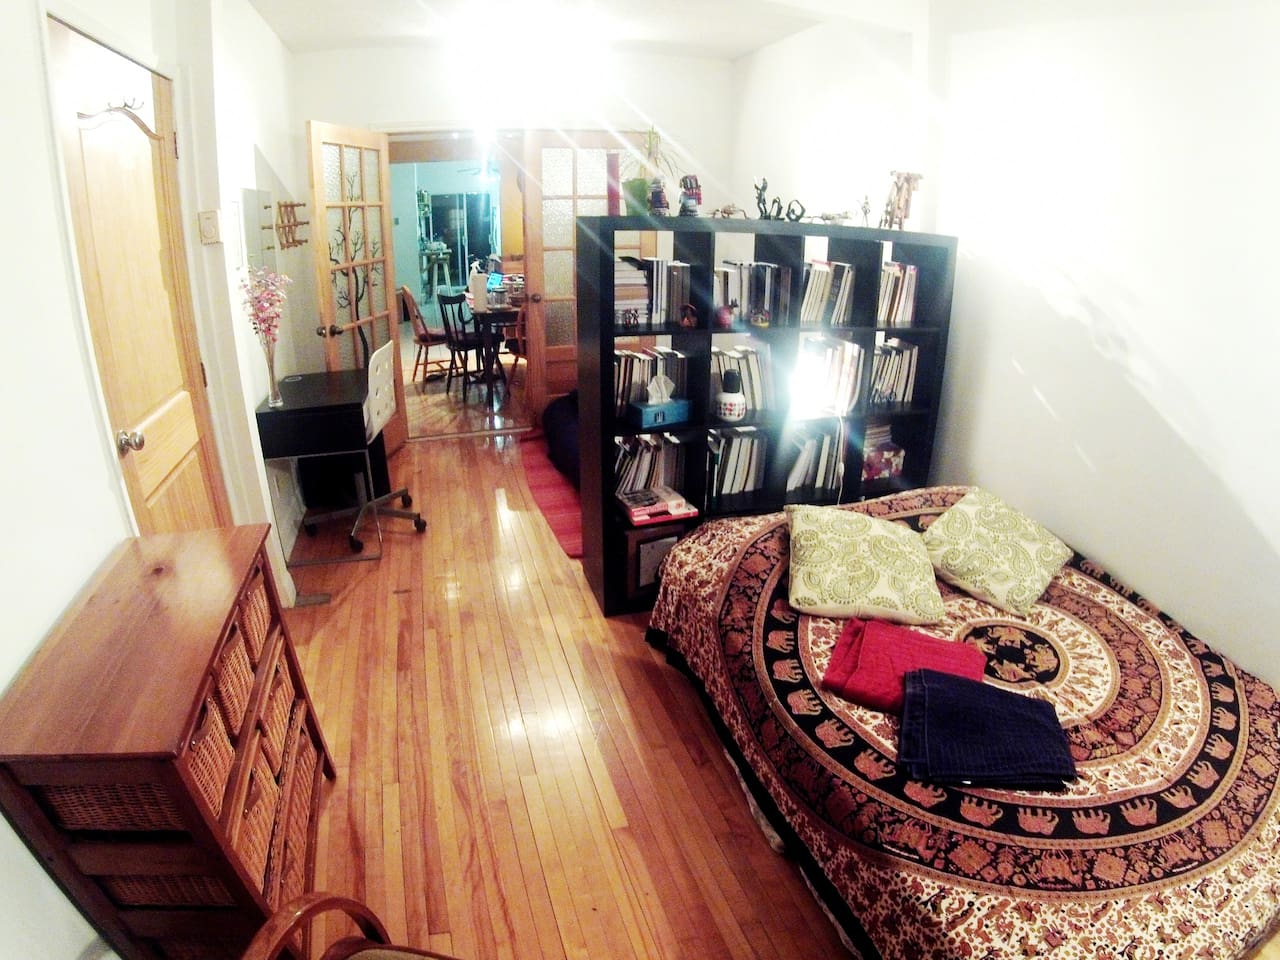 Guests room upstairs - wide angle view